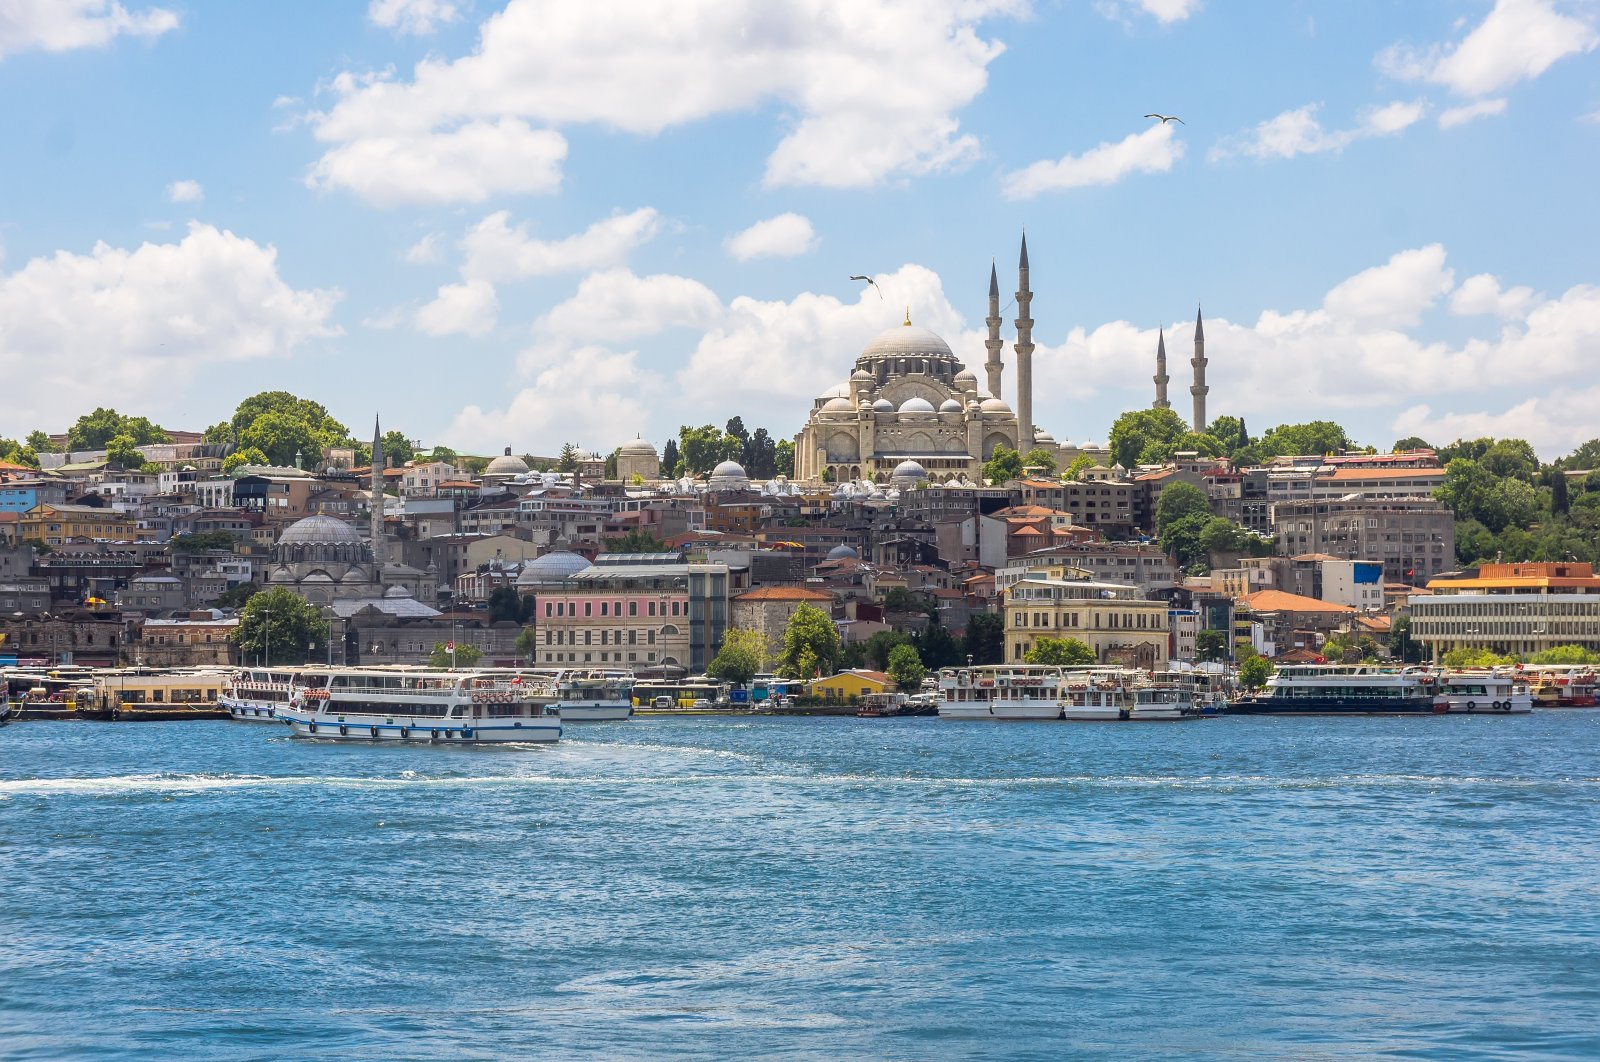 The seafront landscape of Istanbul's historic peninsula. (Shutterstock Photo)